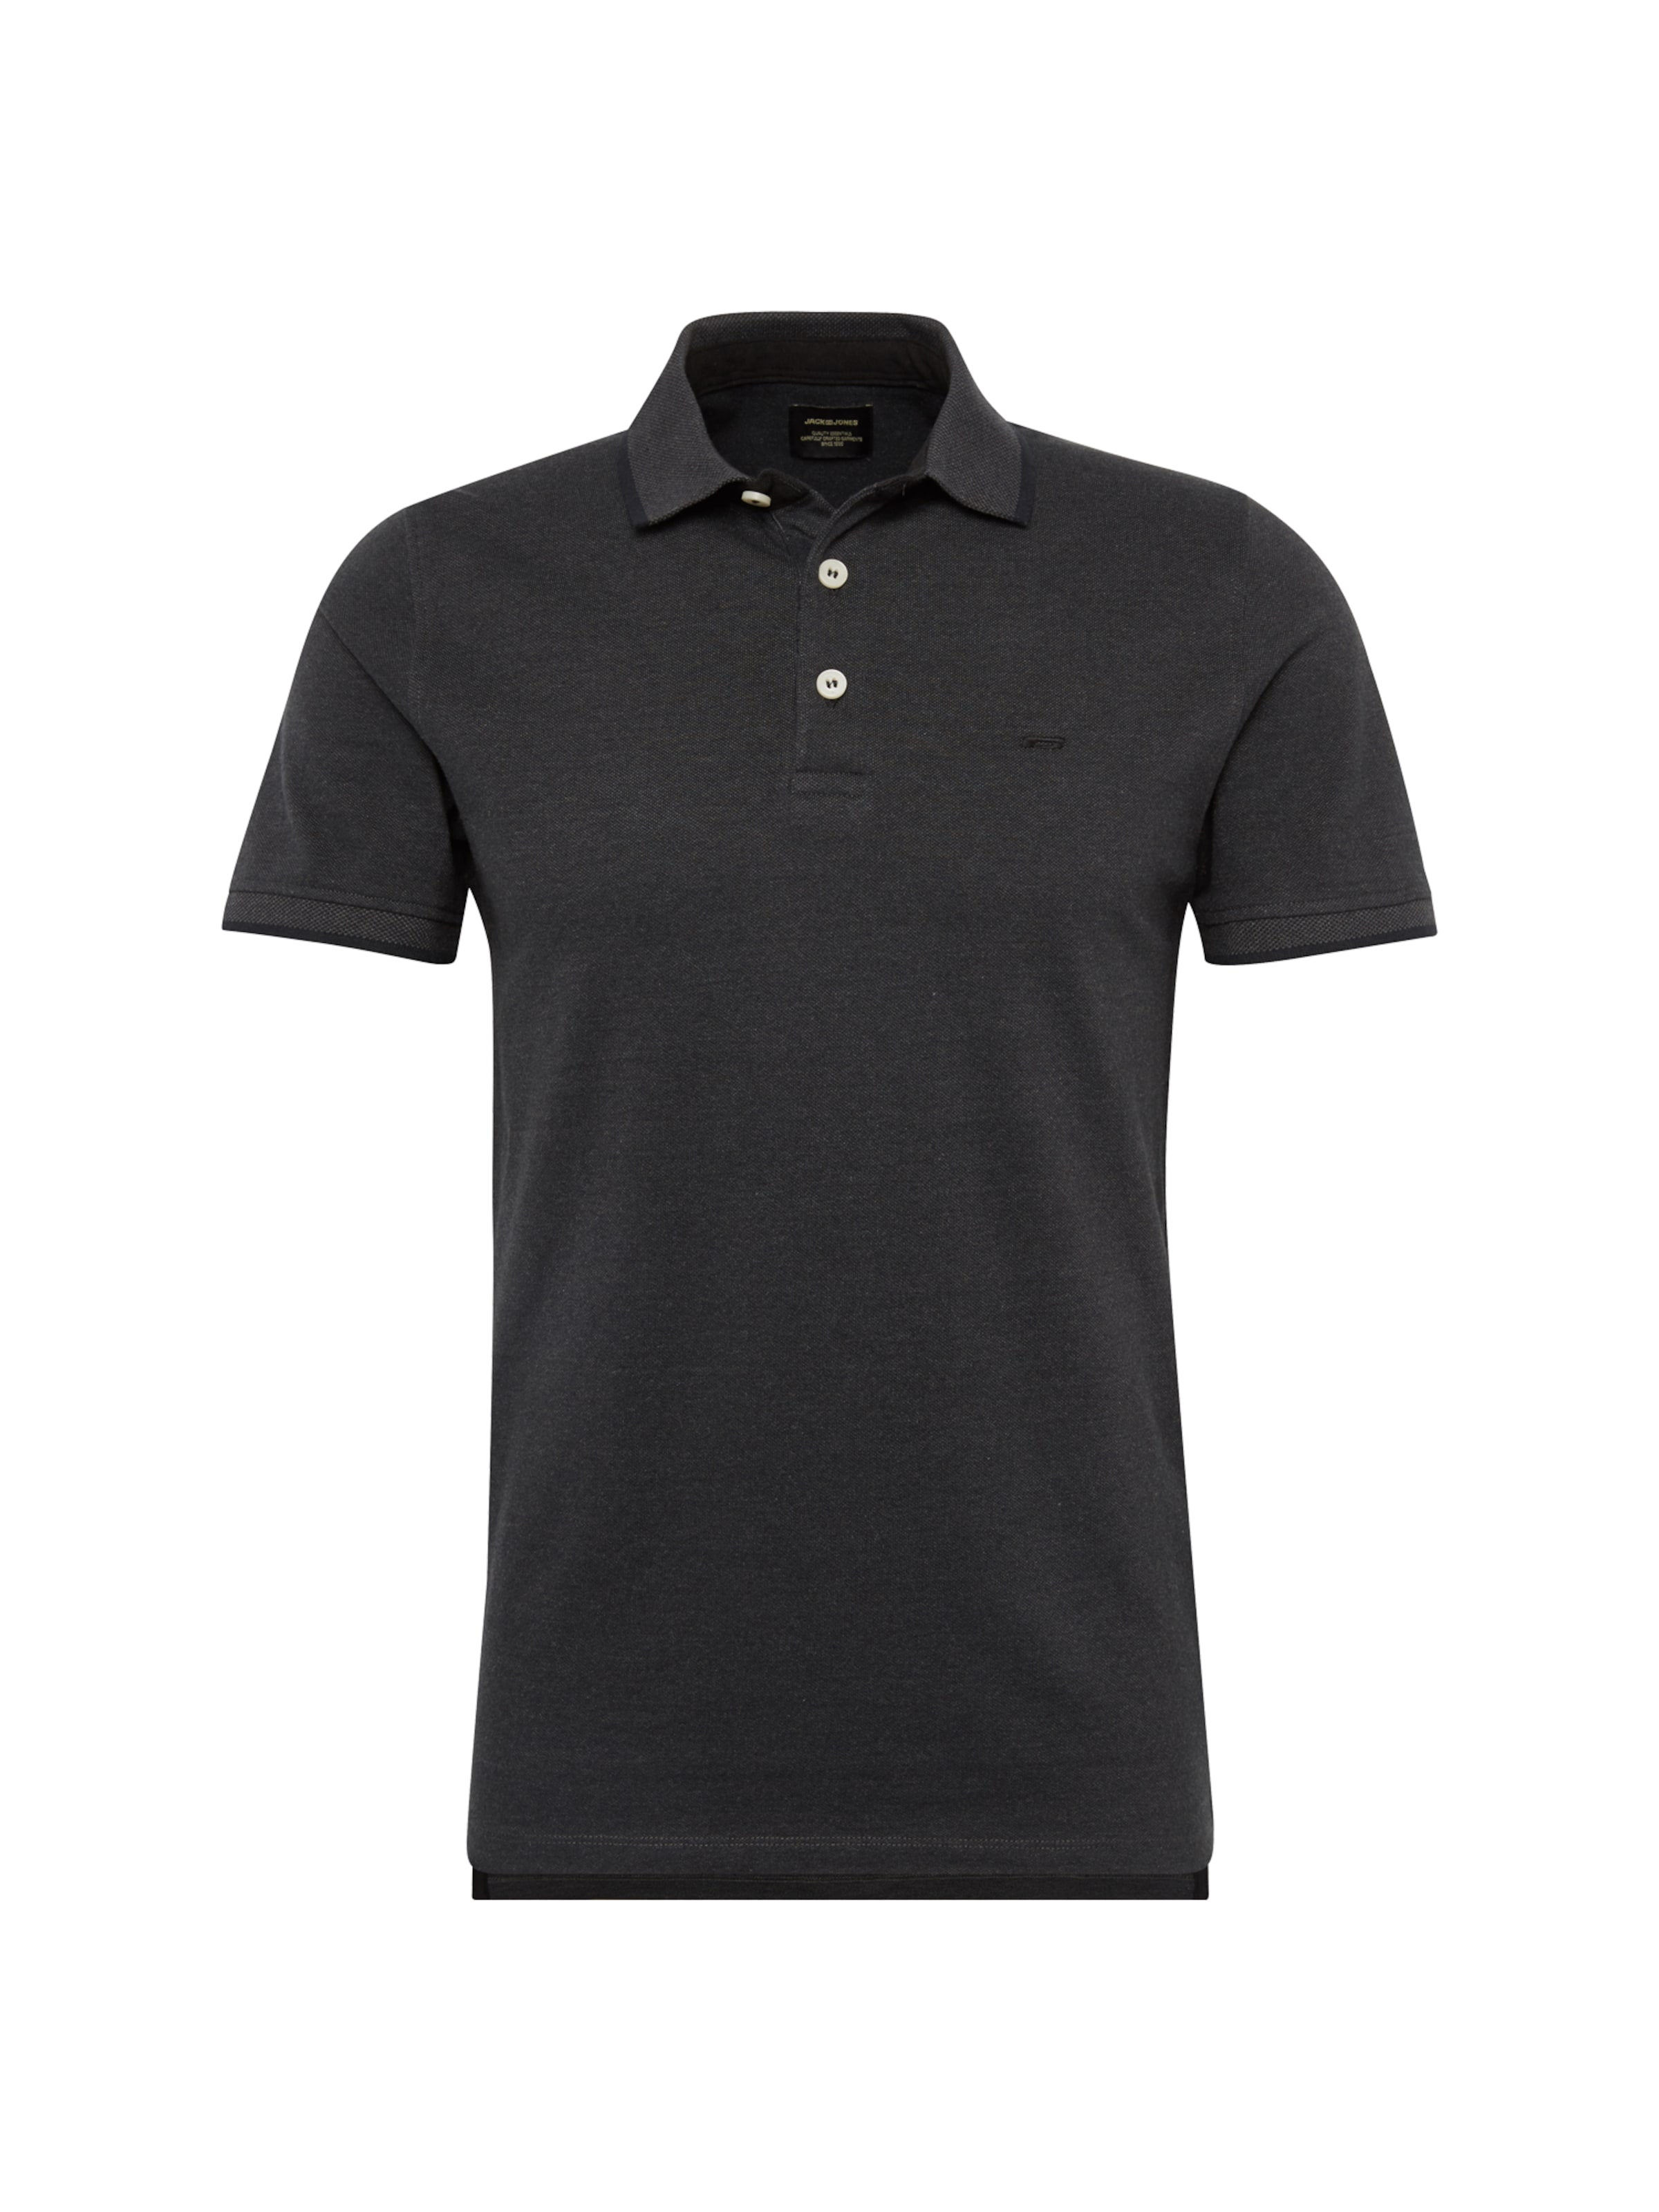 En Jones T shirt Anthracite Jackamp; ZOuXPki